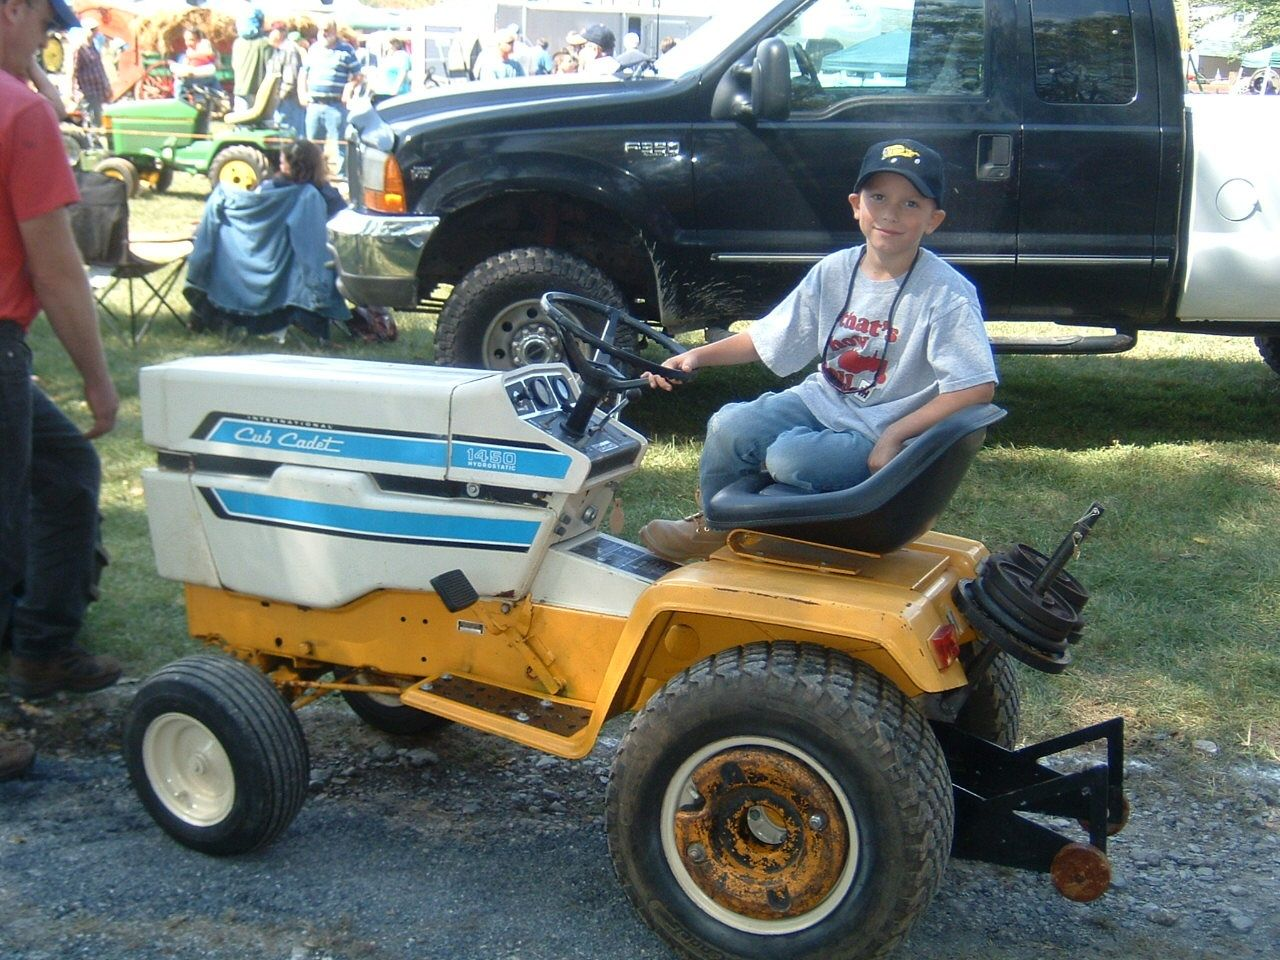 The 1450 Monster Trucks Lawn Tractor Riding Lawnmower